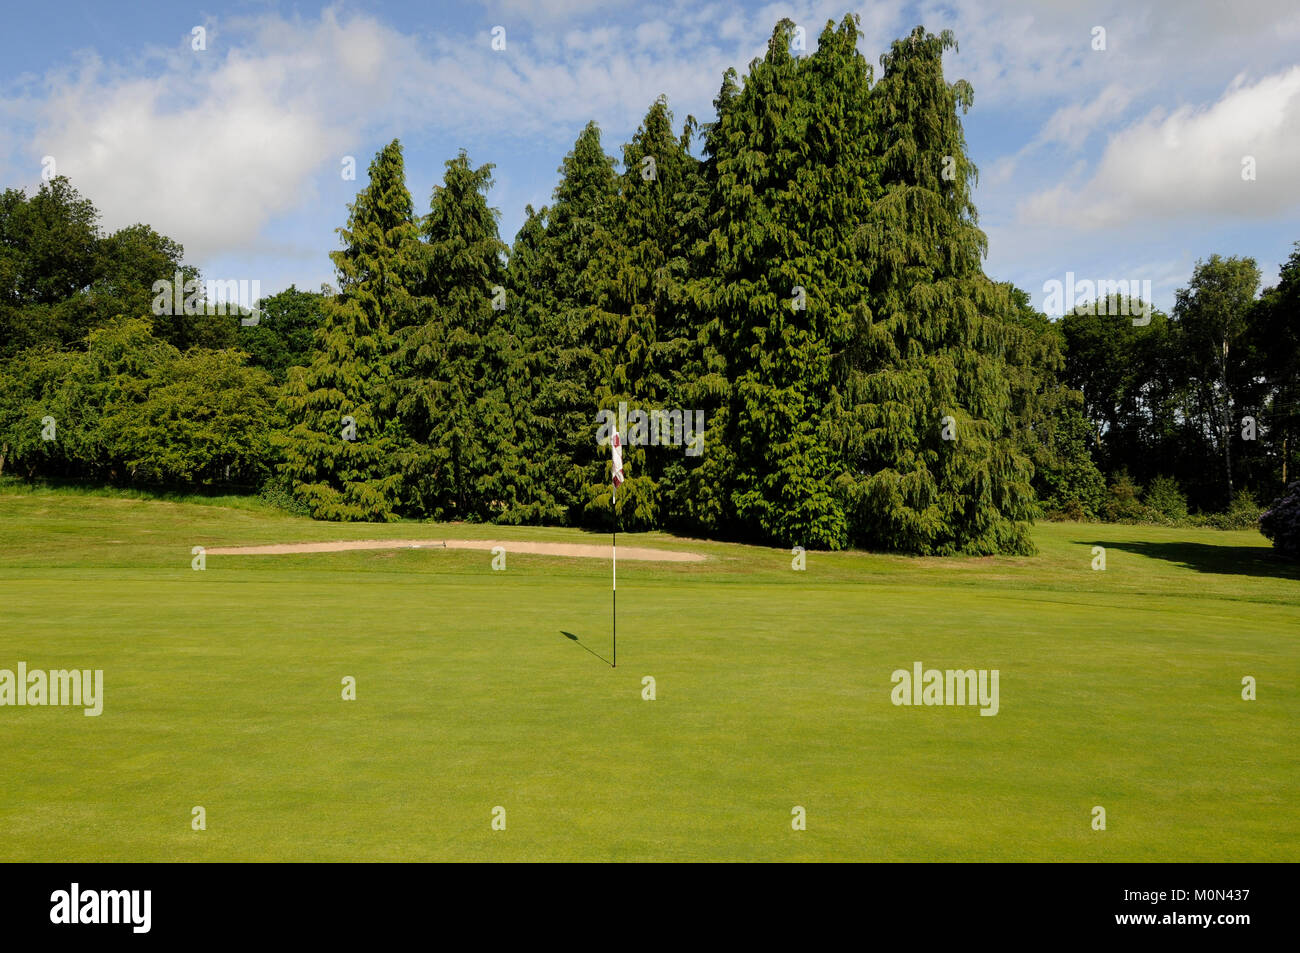 View across the 10th Green to bunker and trees, Hartley Wintney Golf Club, Hartley Wintney, Hampshire, England Stock Photo